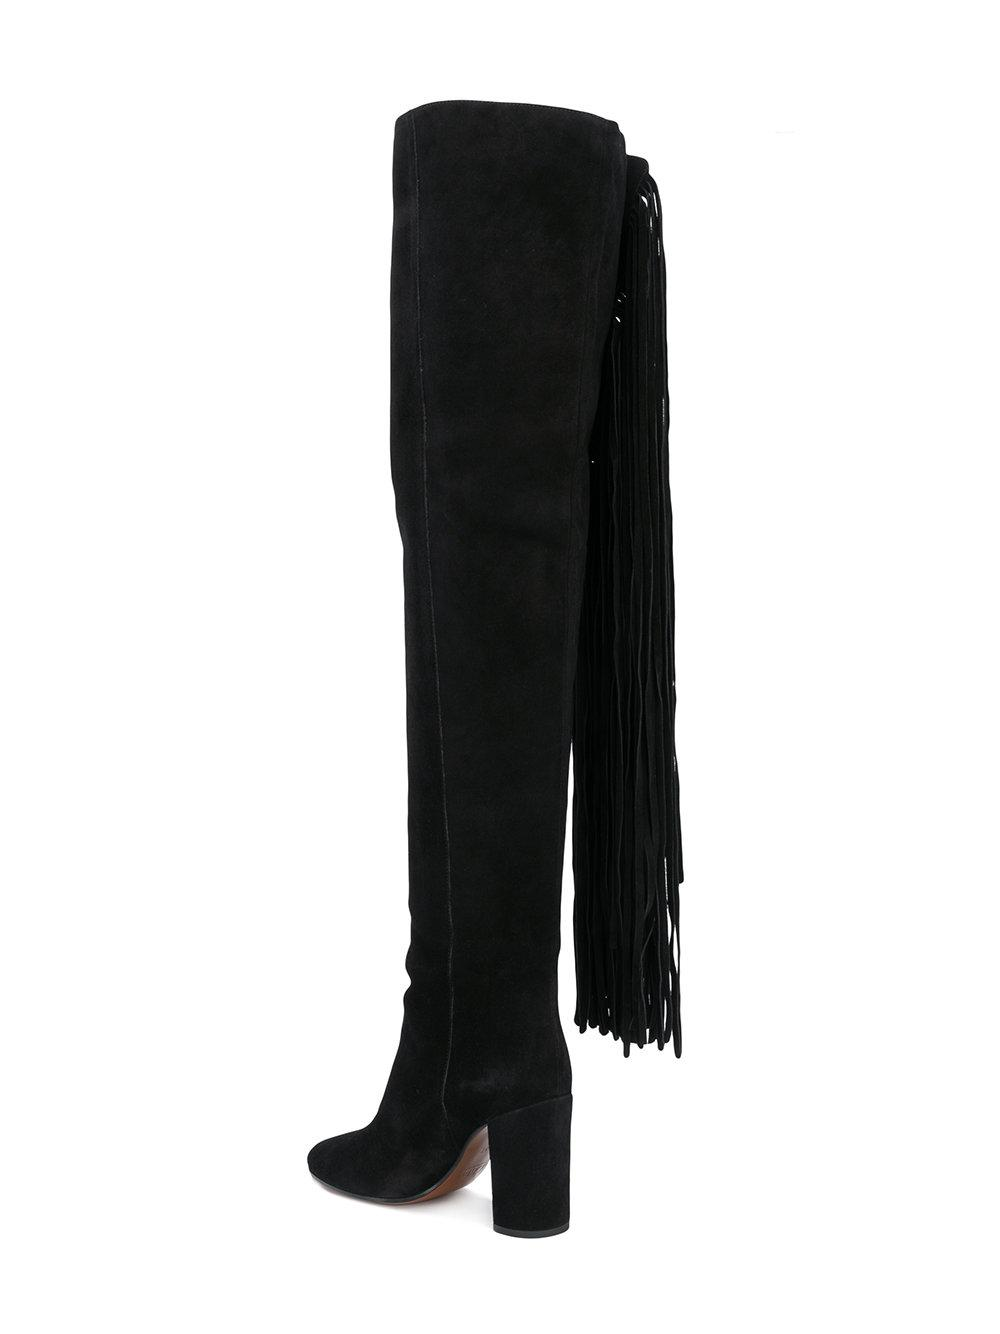 great deals online cheap sale visa payment Chloé Qaisha fringed over-the-knee boots new cheap sale 2015 online cheap price ECXly3vl